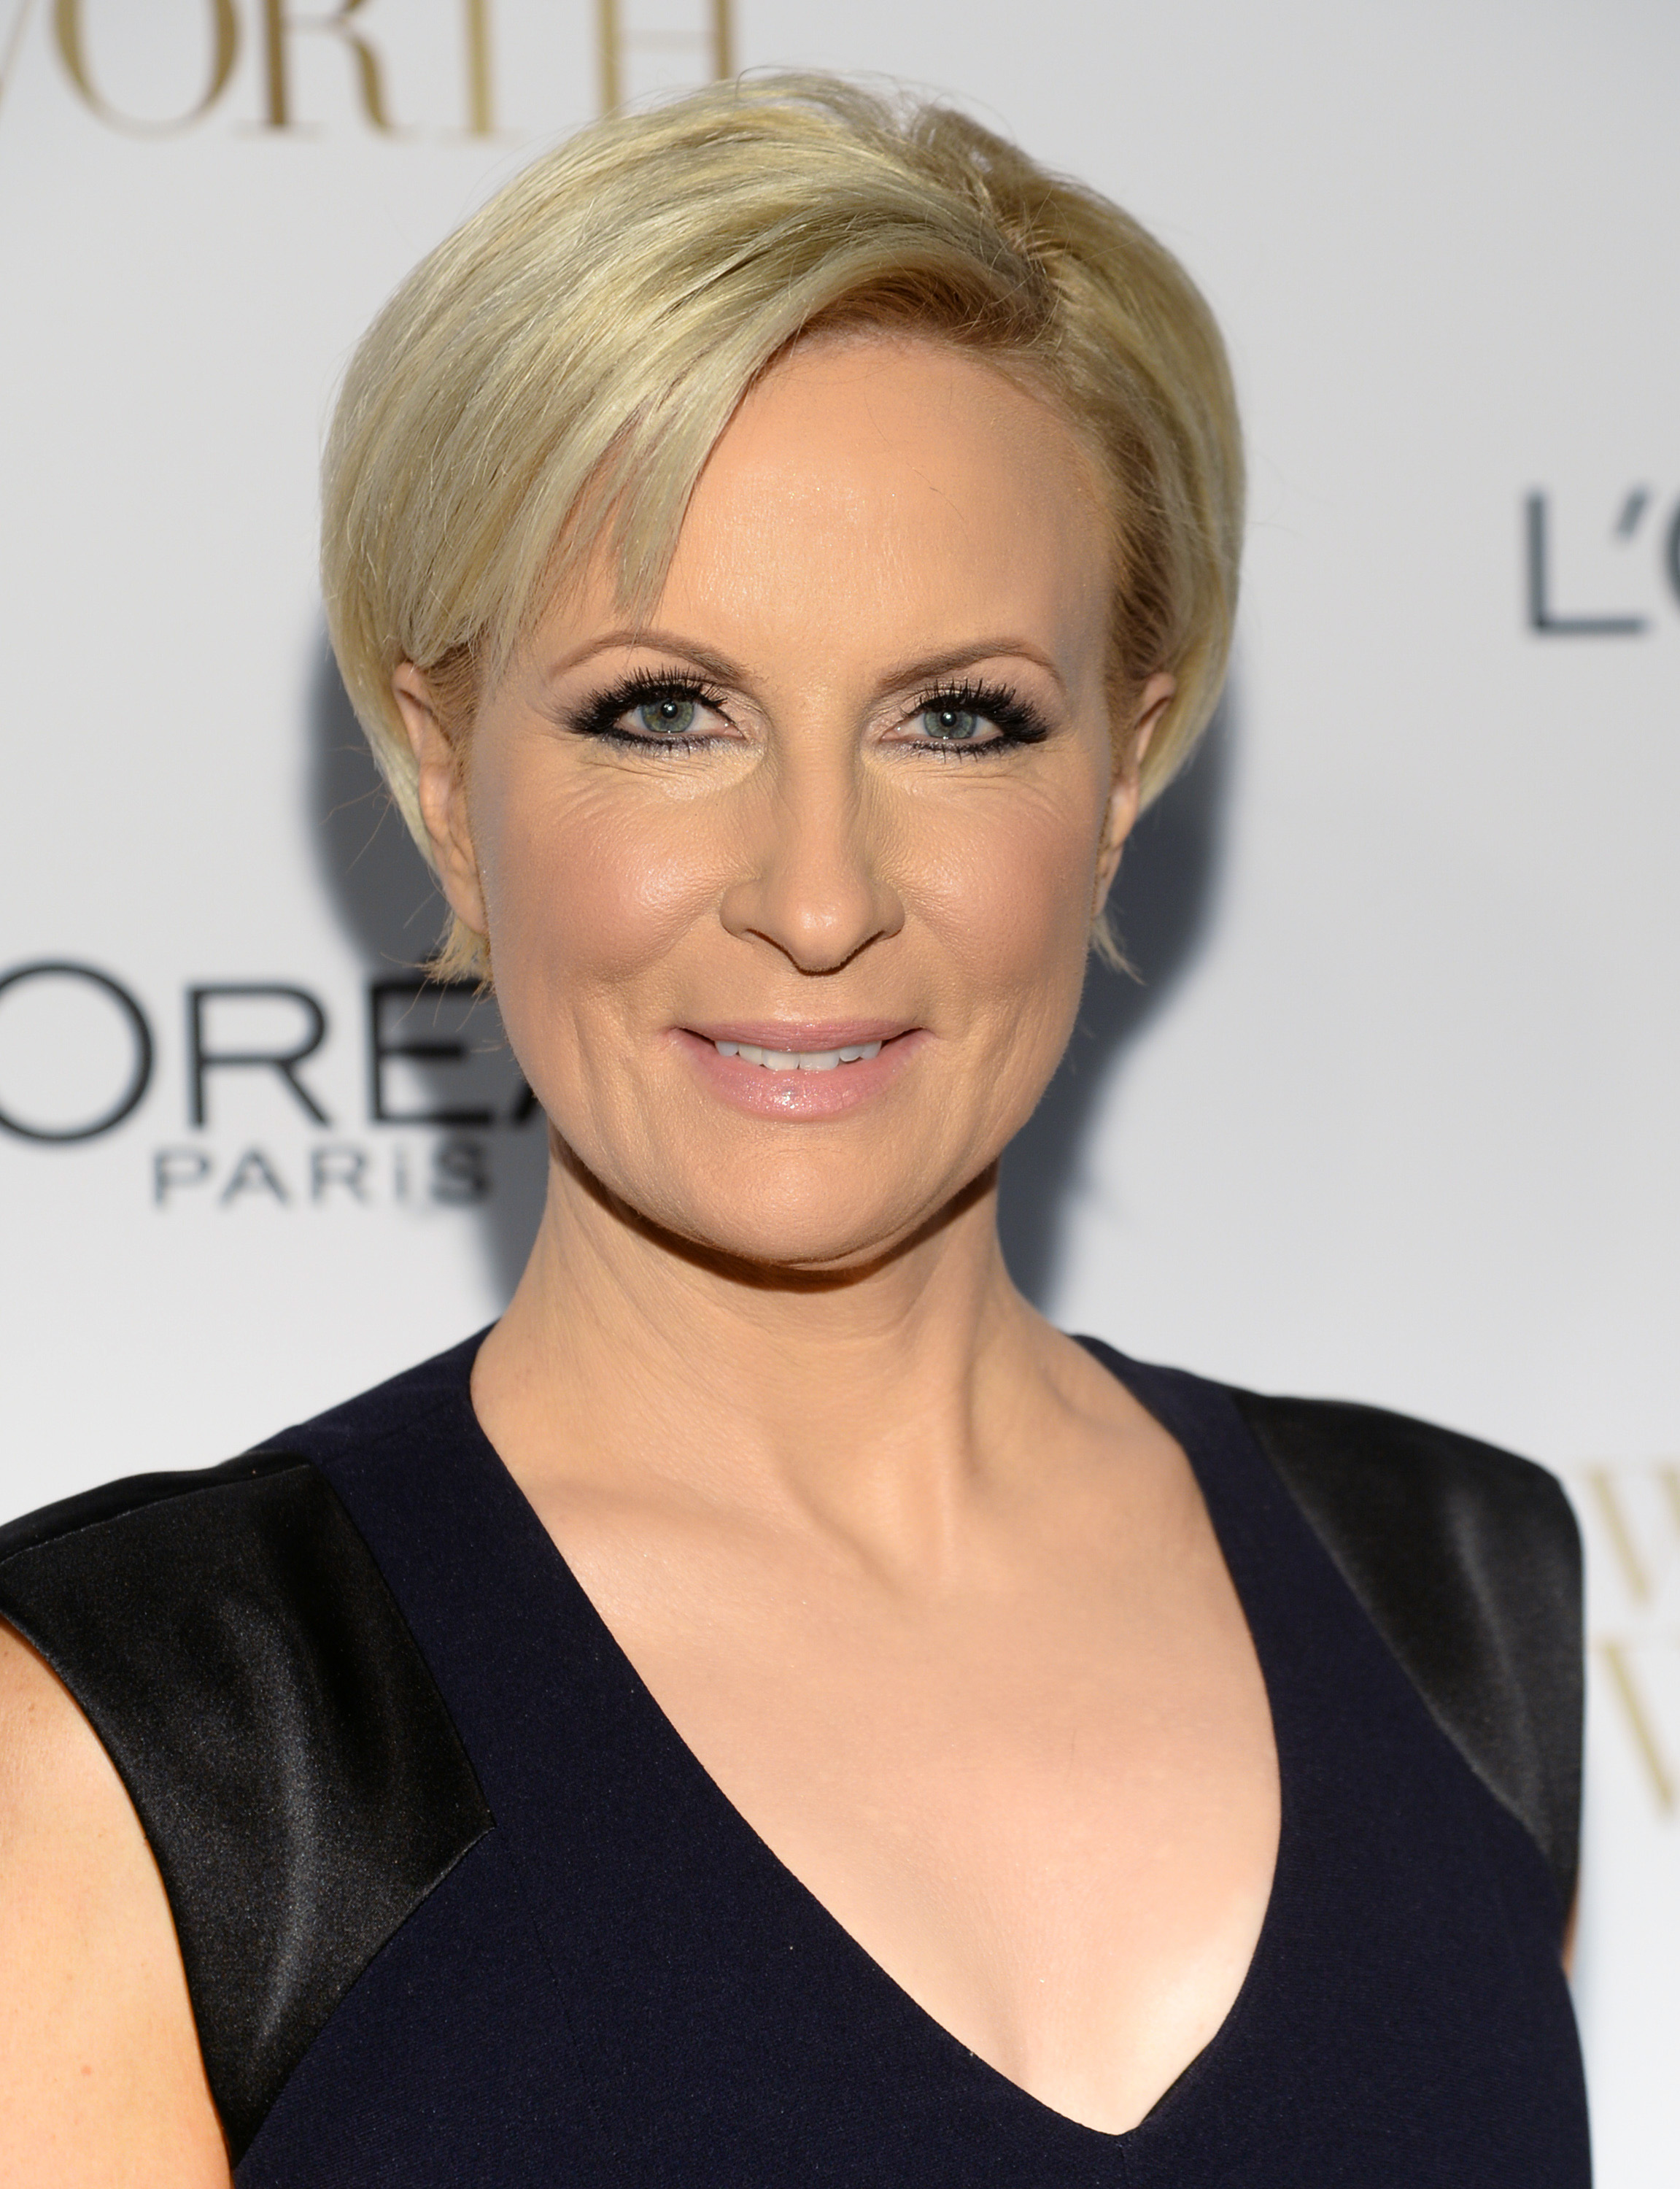 Mika Brzezinski arrives at the Ninth Annual Women of Worth Awards in New York City on Dec. 2, 2014.